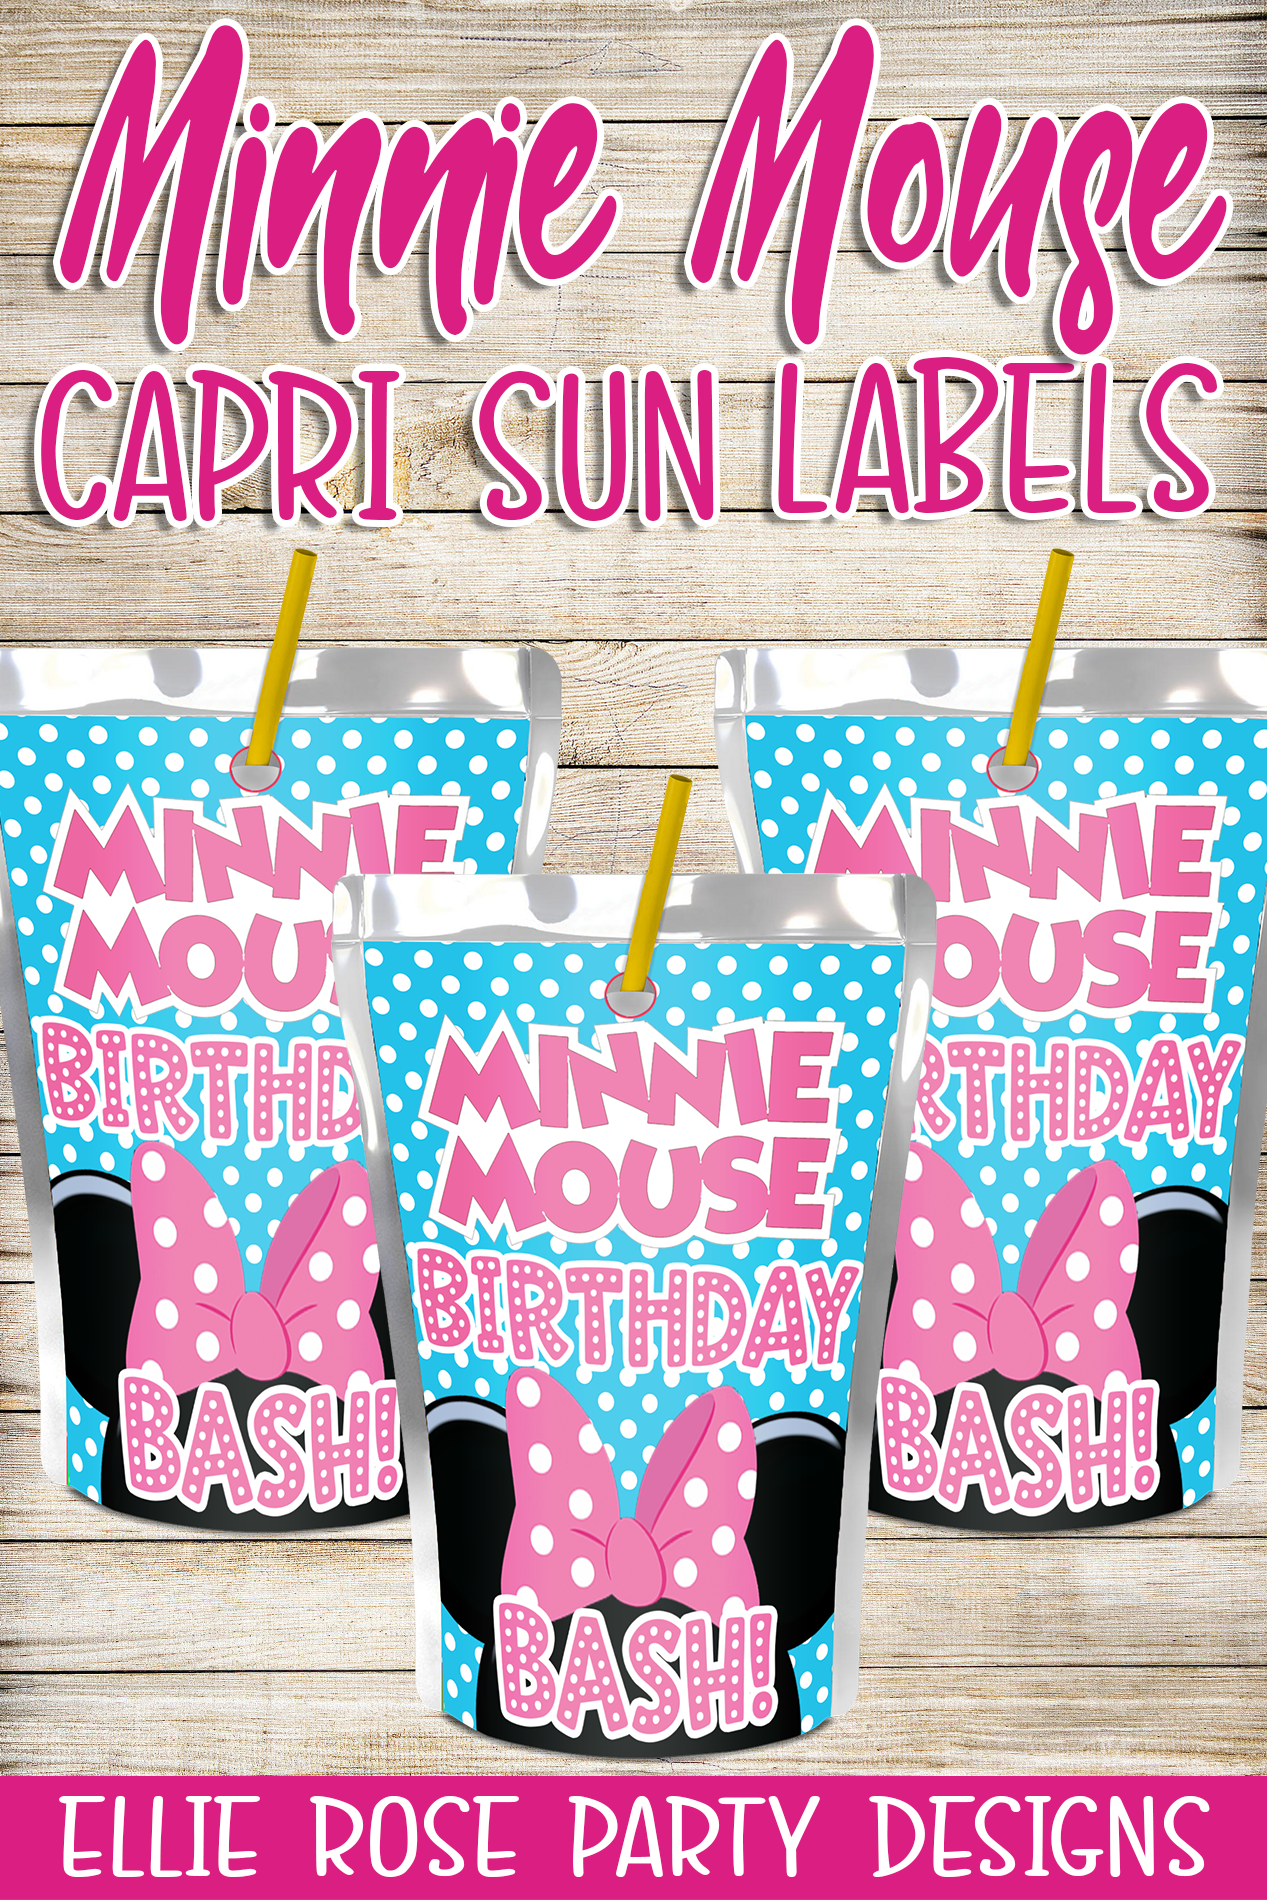 Minnie Mouse Bowtique Juice Pouch Capri Sun Labels [INSTANT DOWNLOAD]